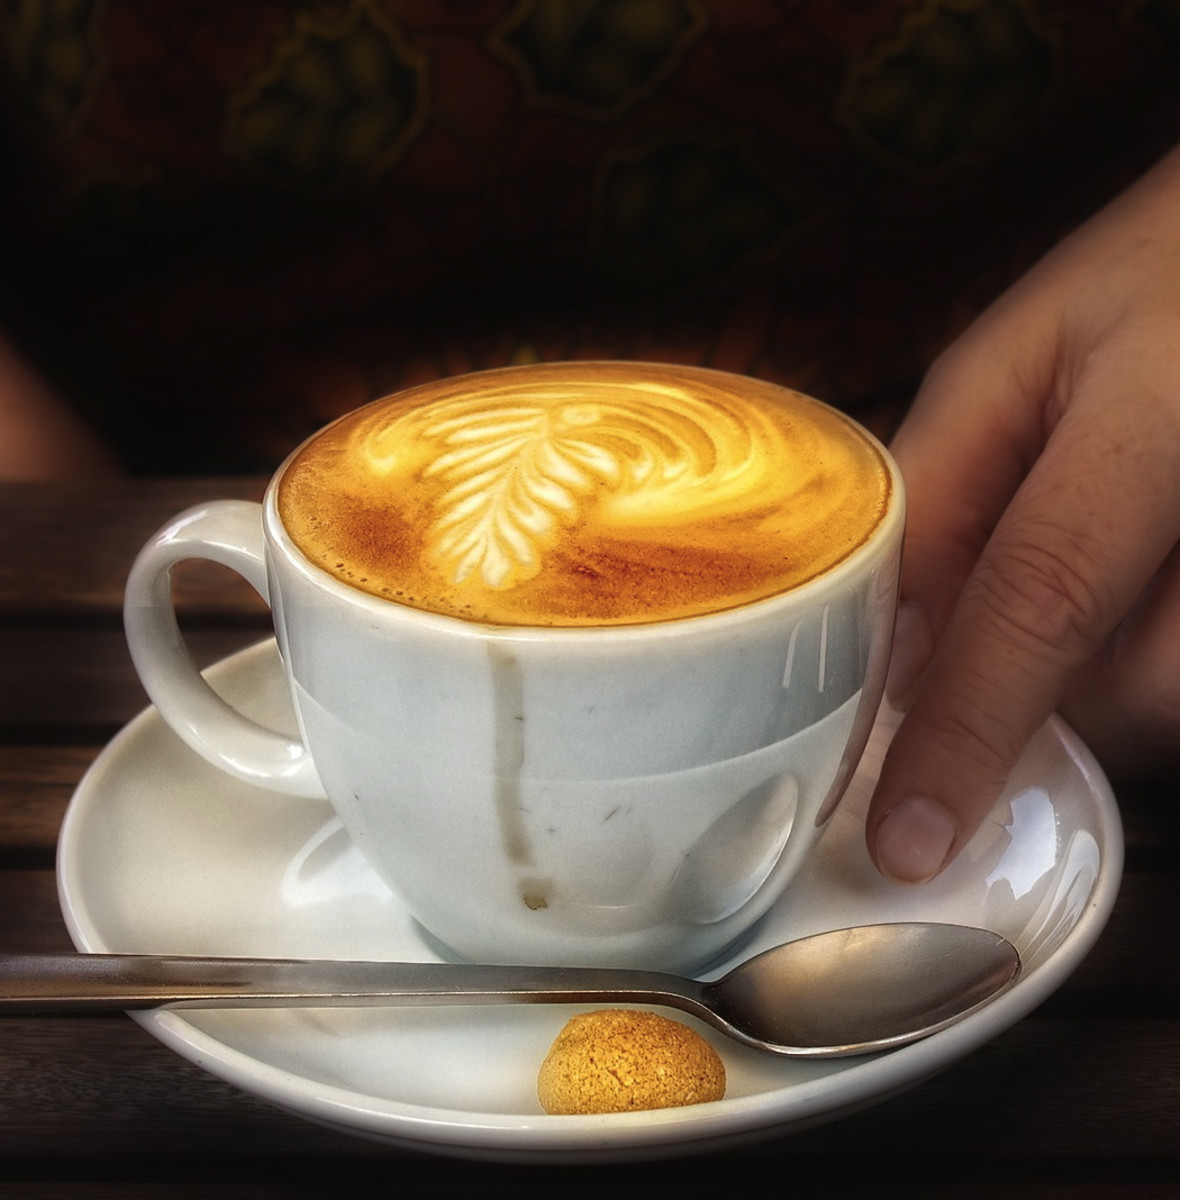 A cappuccino is equal volumes espresso, milk and foam.